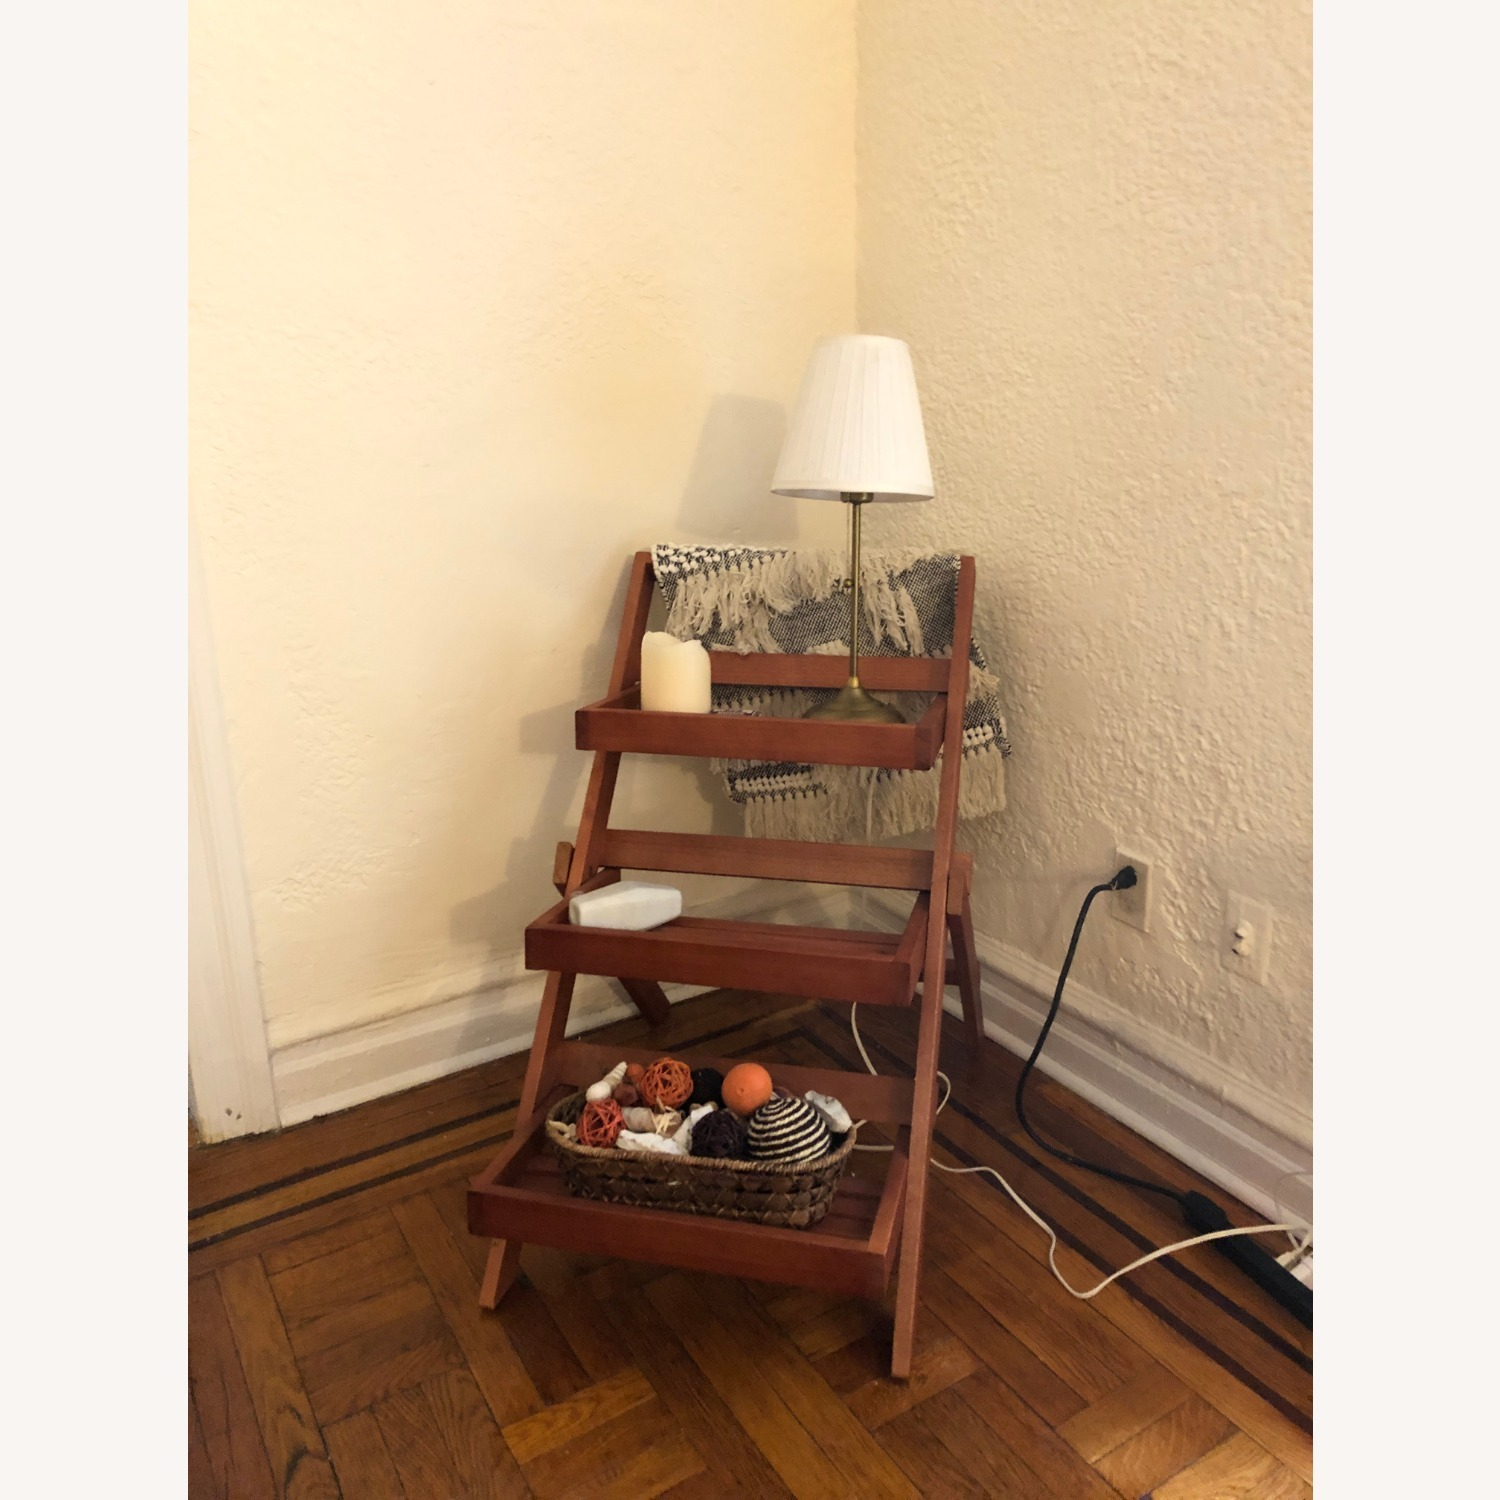 Pier 1 Imports Wood 3-Tiered Plant Stand - image-1